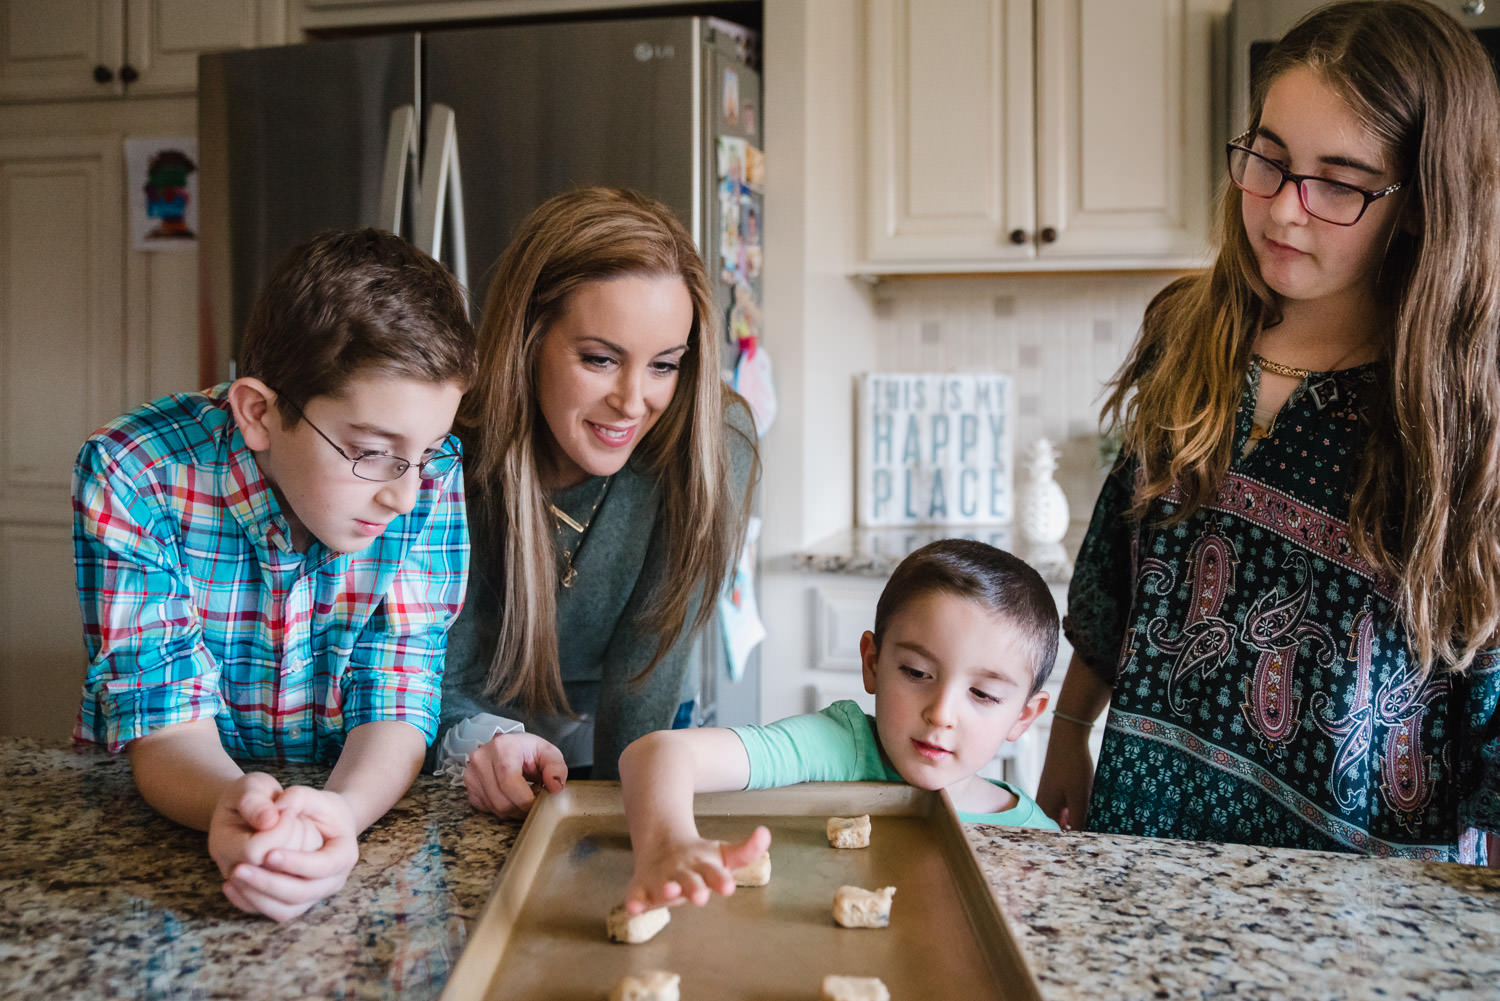 A family bakes cookies together.